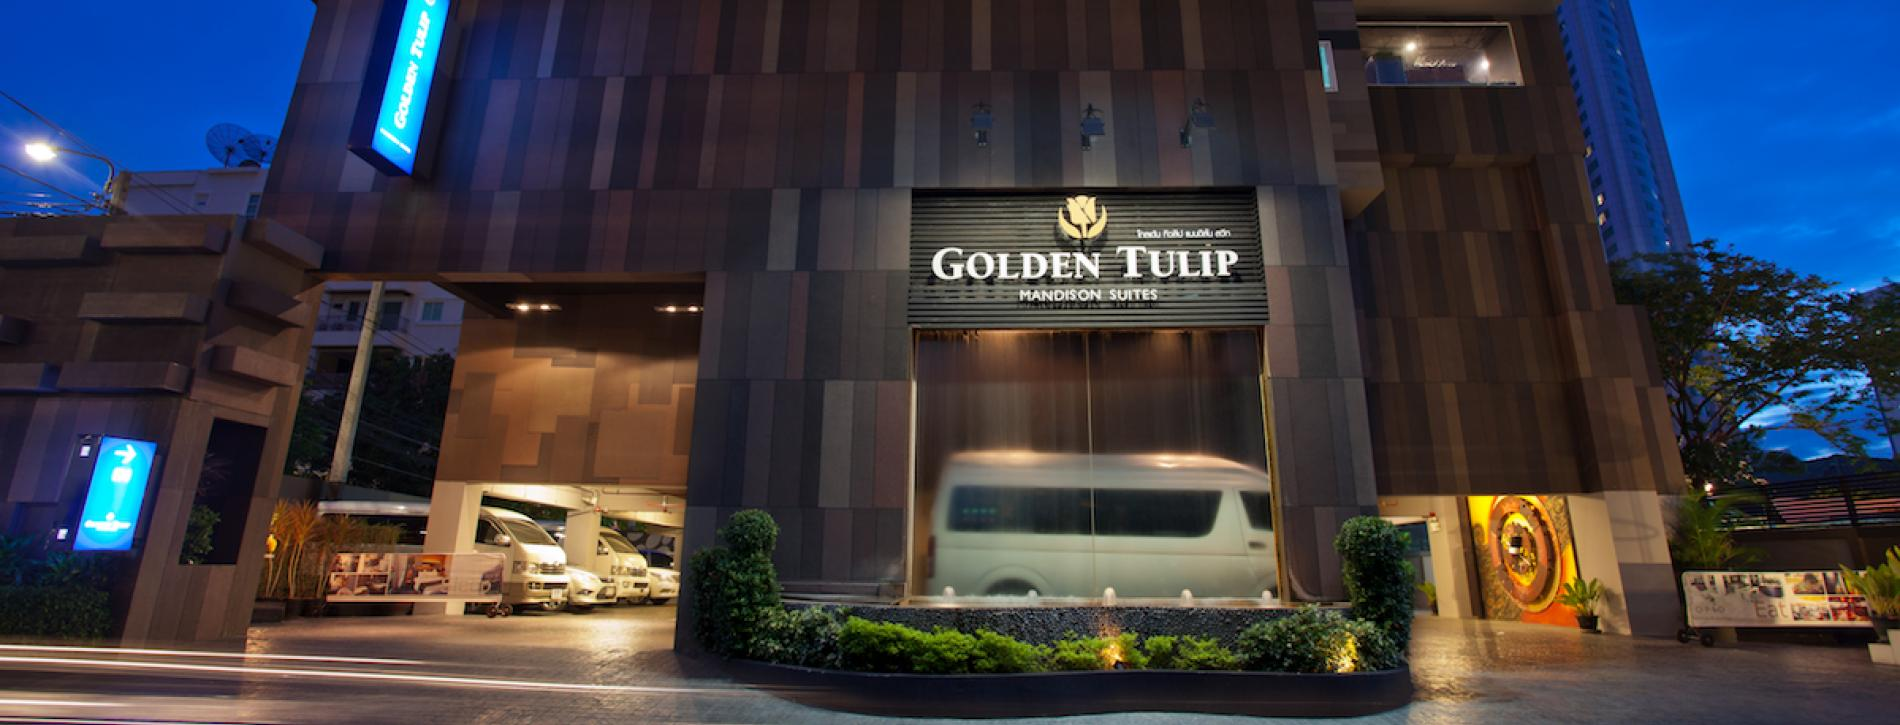 Vacation Hub International - VHI - Golden Tulip Mandison Suites